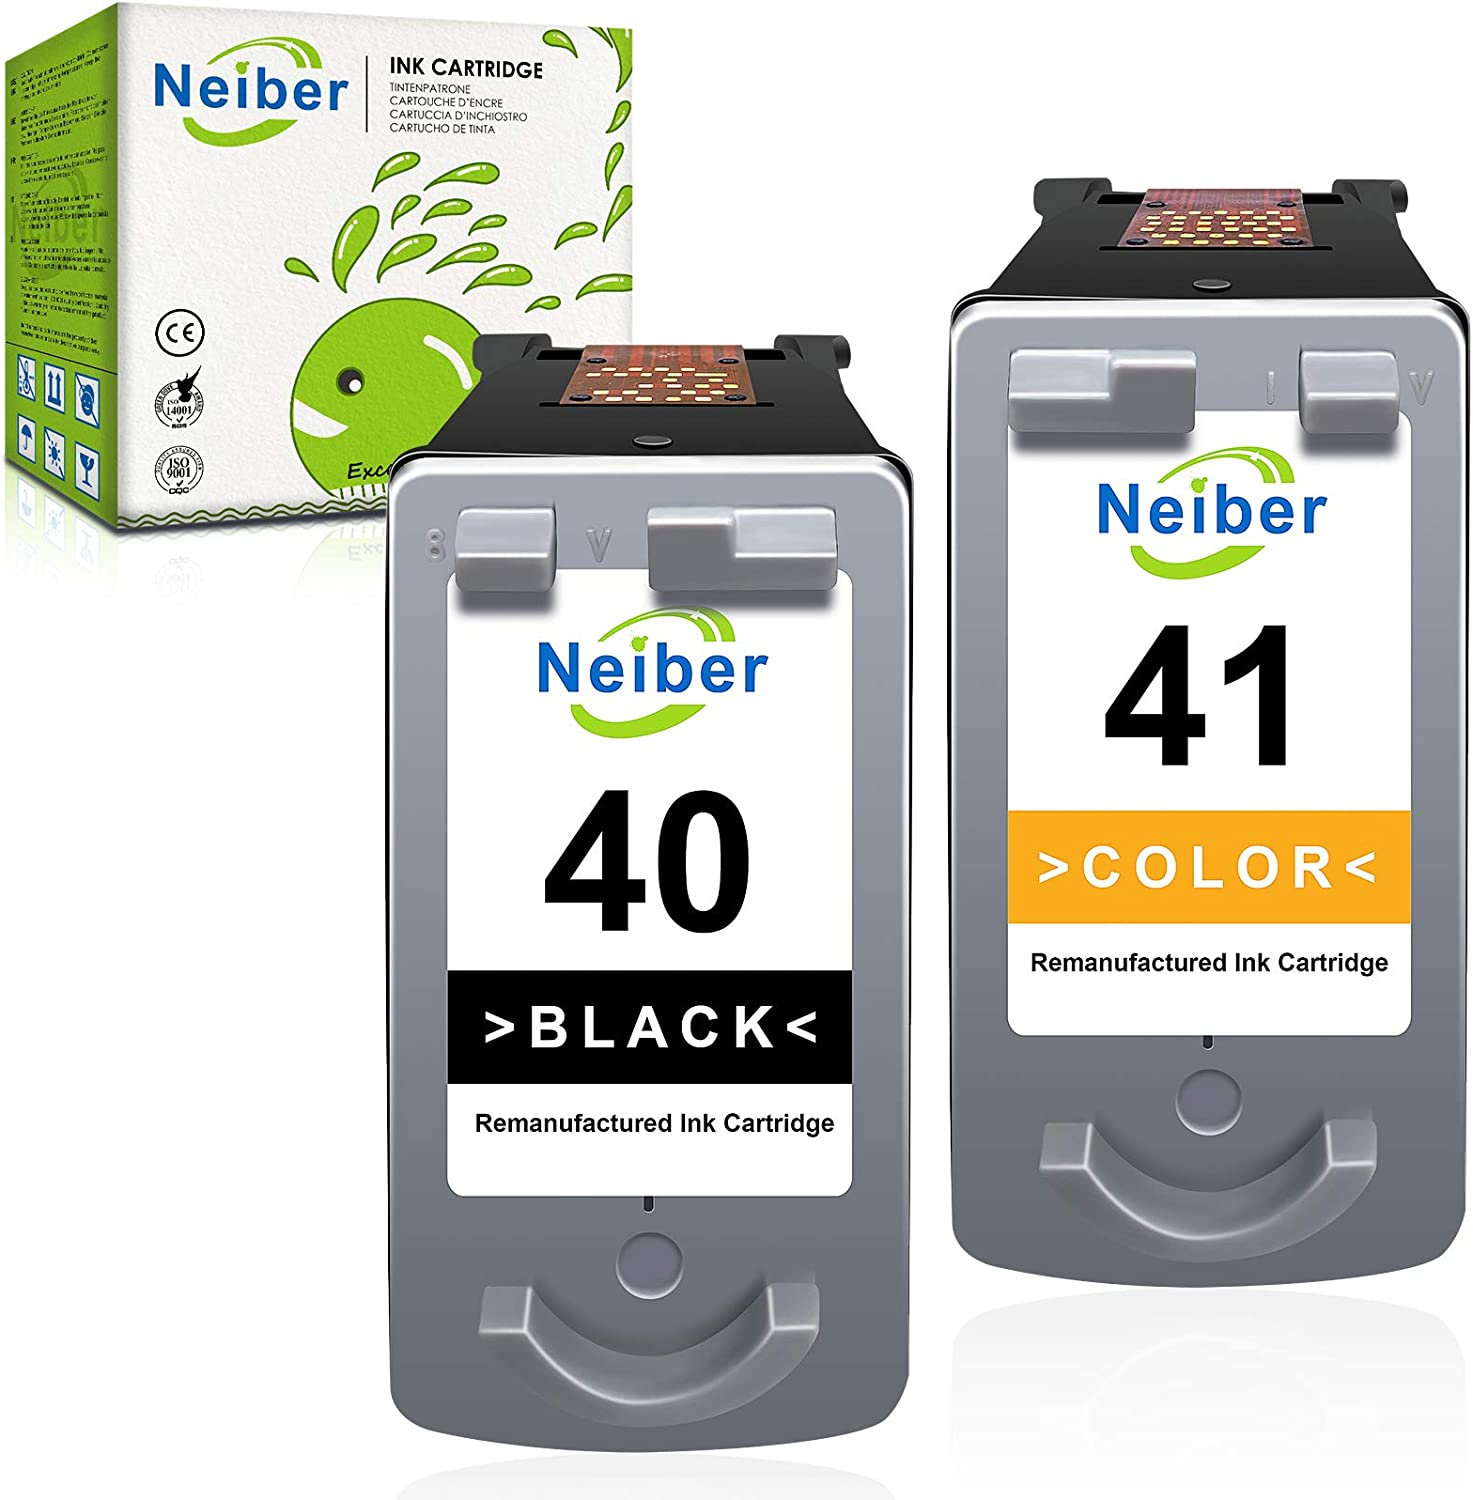 Neiber Direct stock discount discount Remanufactured Ink Cartridge Replacement Canon PG-40 for